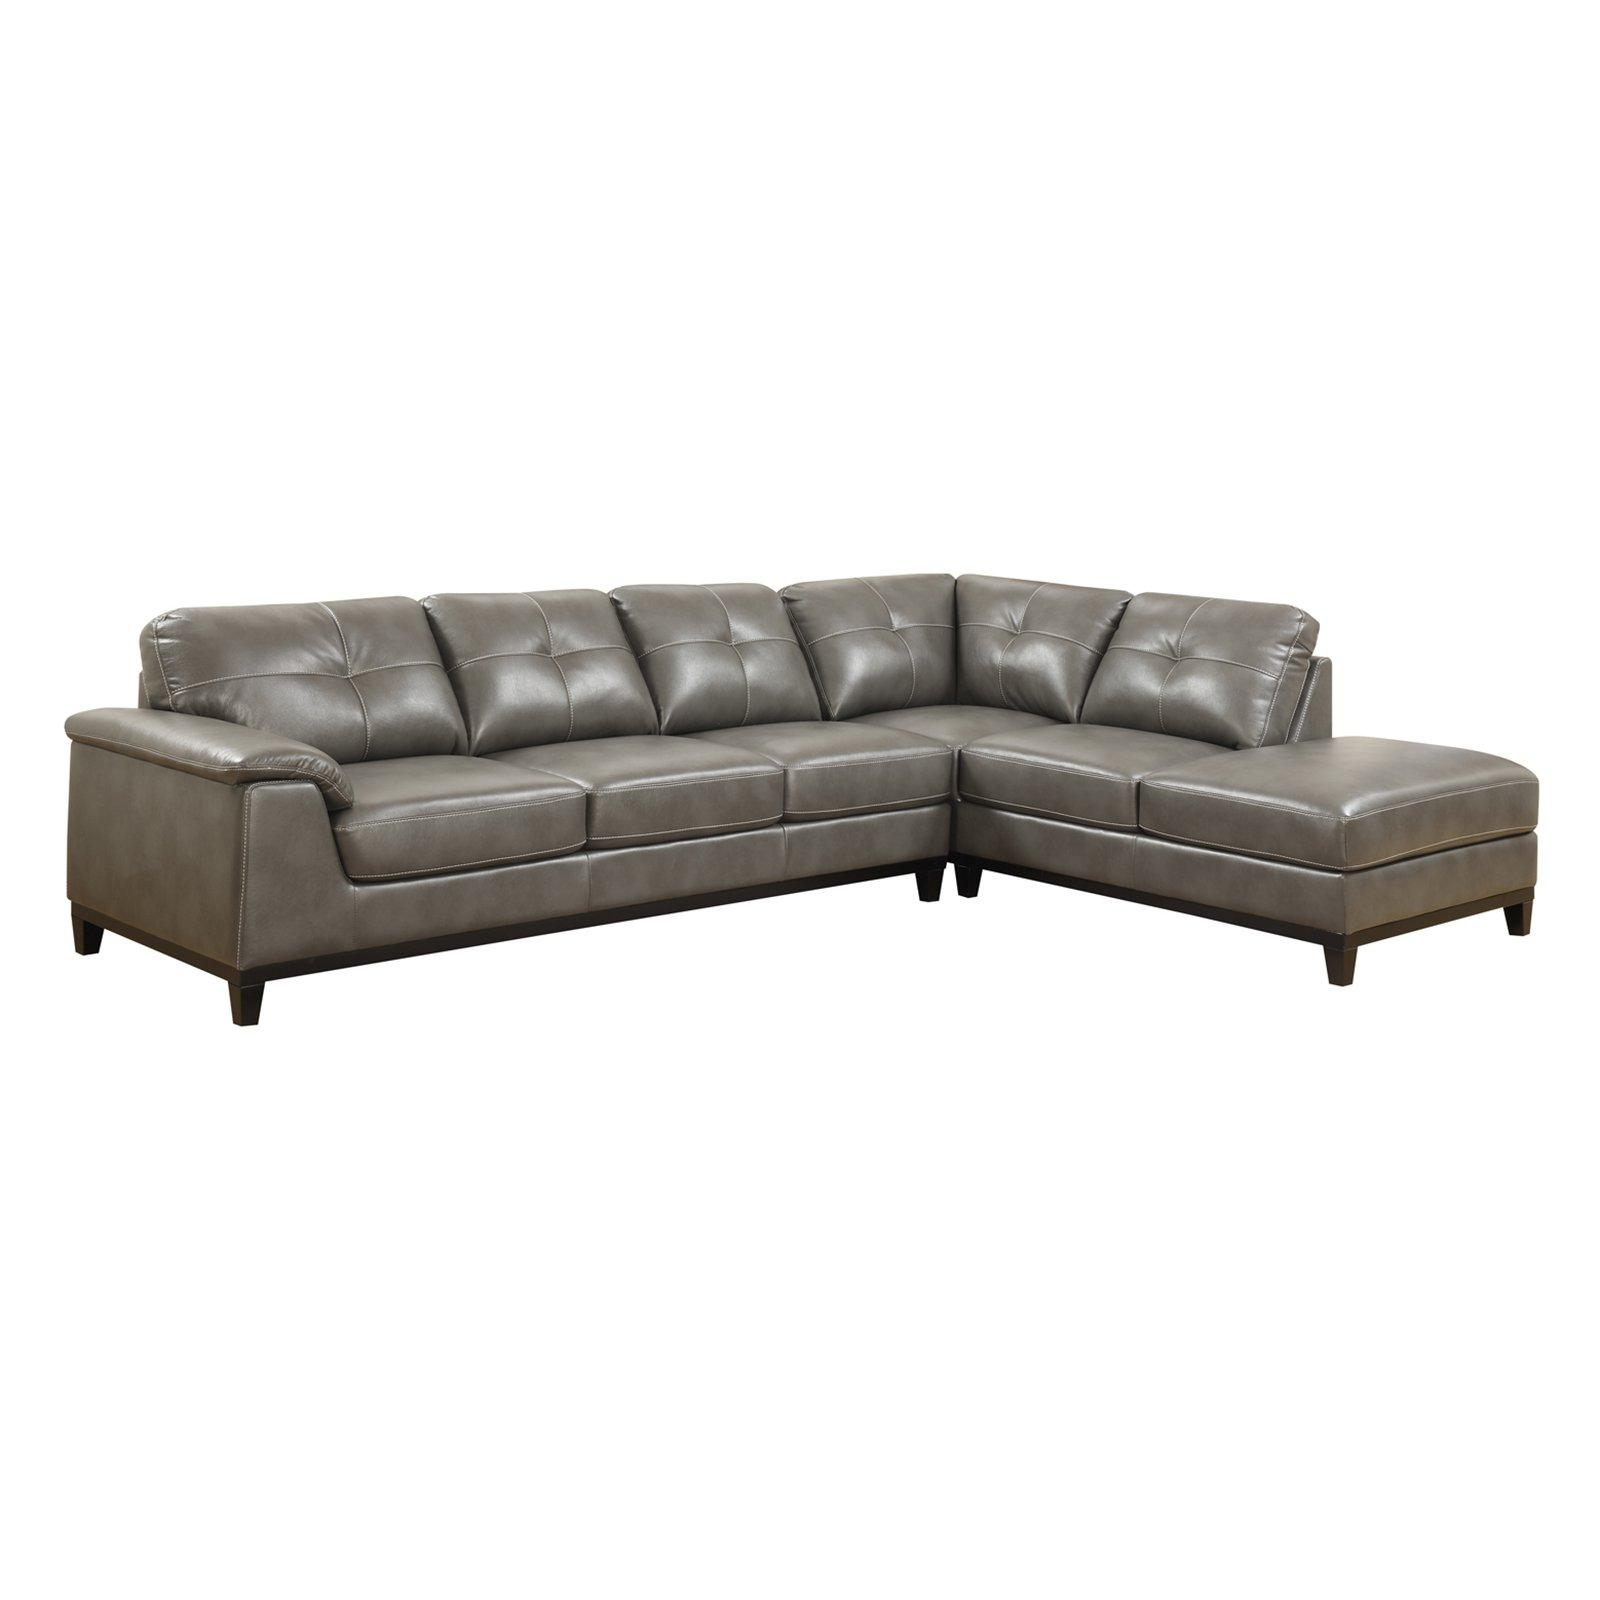 Fairmont Designs Summer 3 Piece Sectional Sofa | Hayneedle With Regard To Sectional Sofa With 2 Chaises (Image 16 of 20)